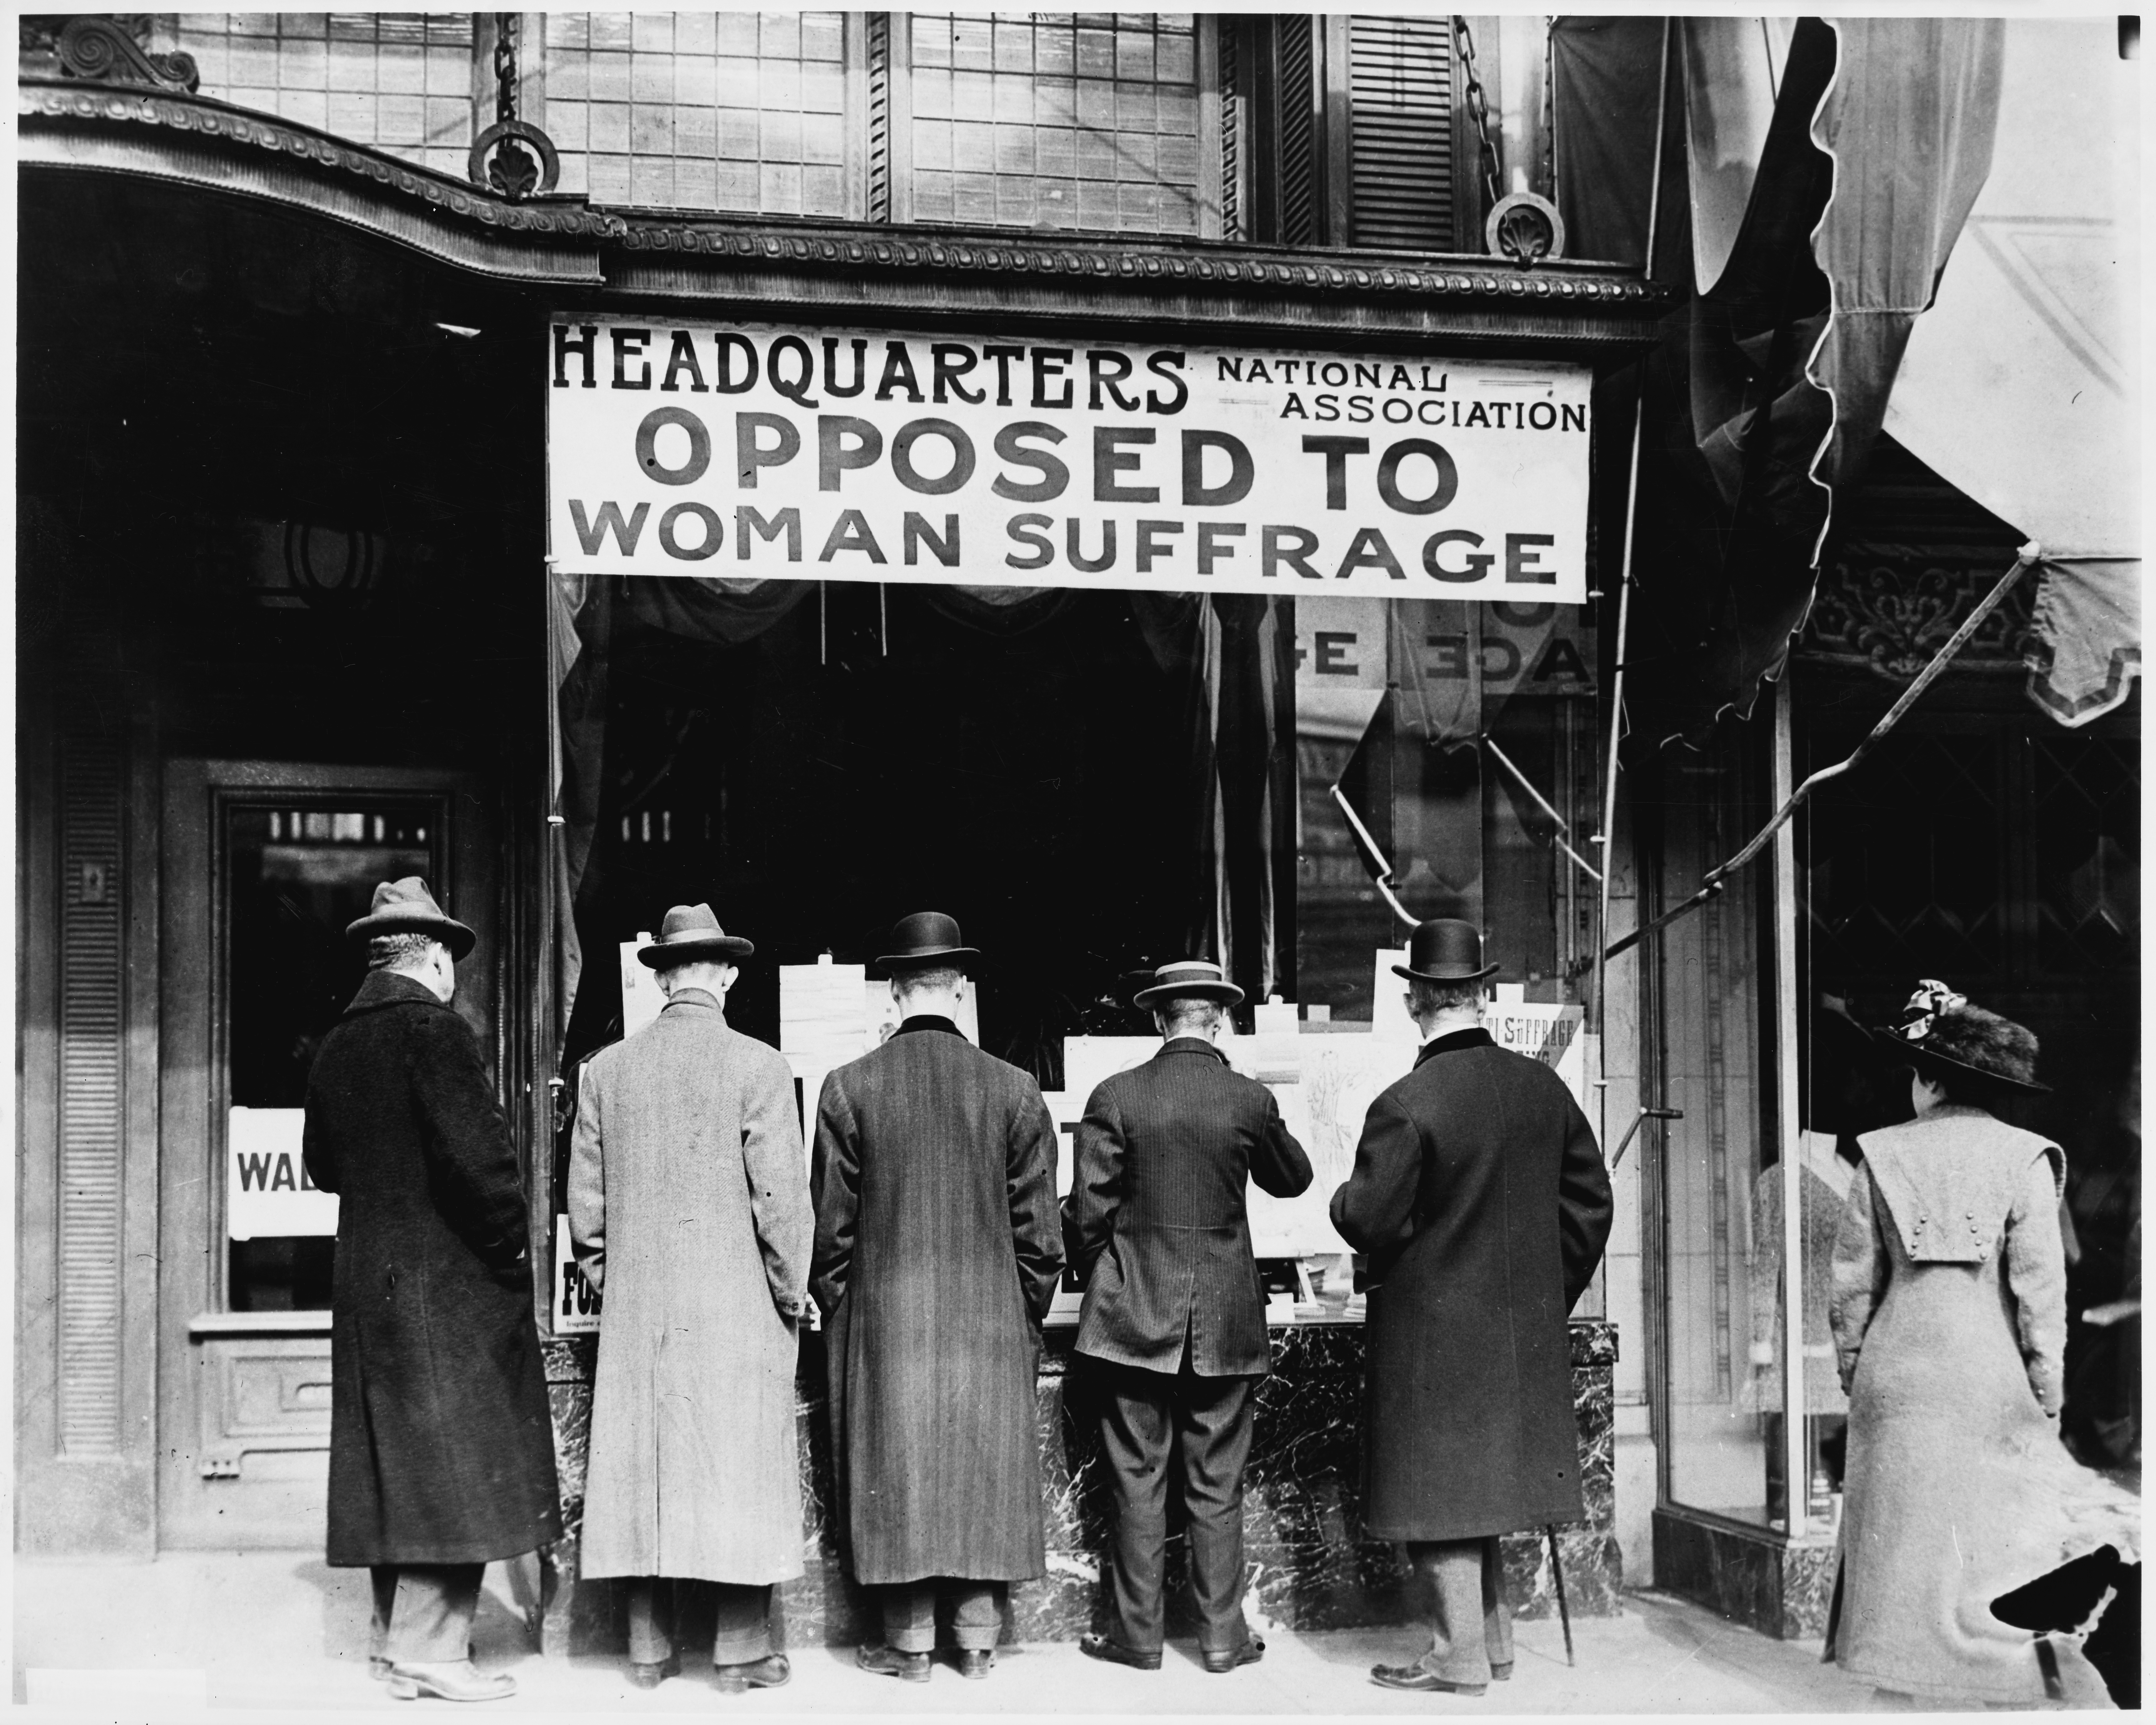 Securing women's suffrage has been a defining issue for the feminist movement.